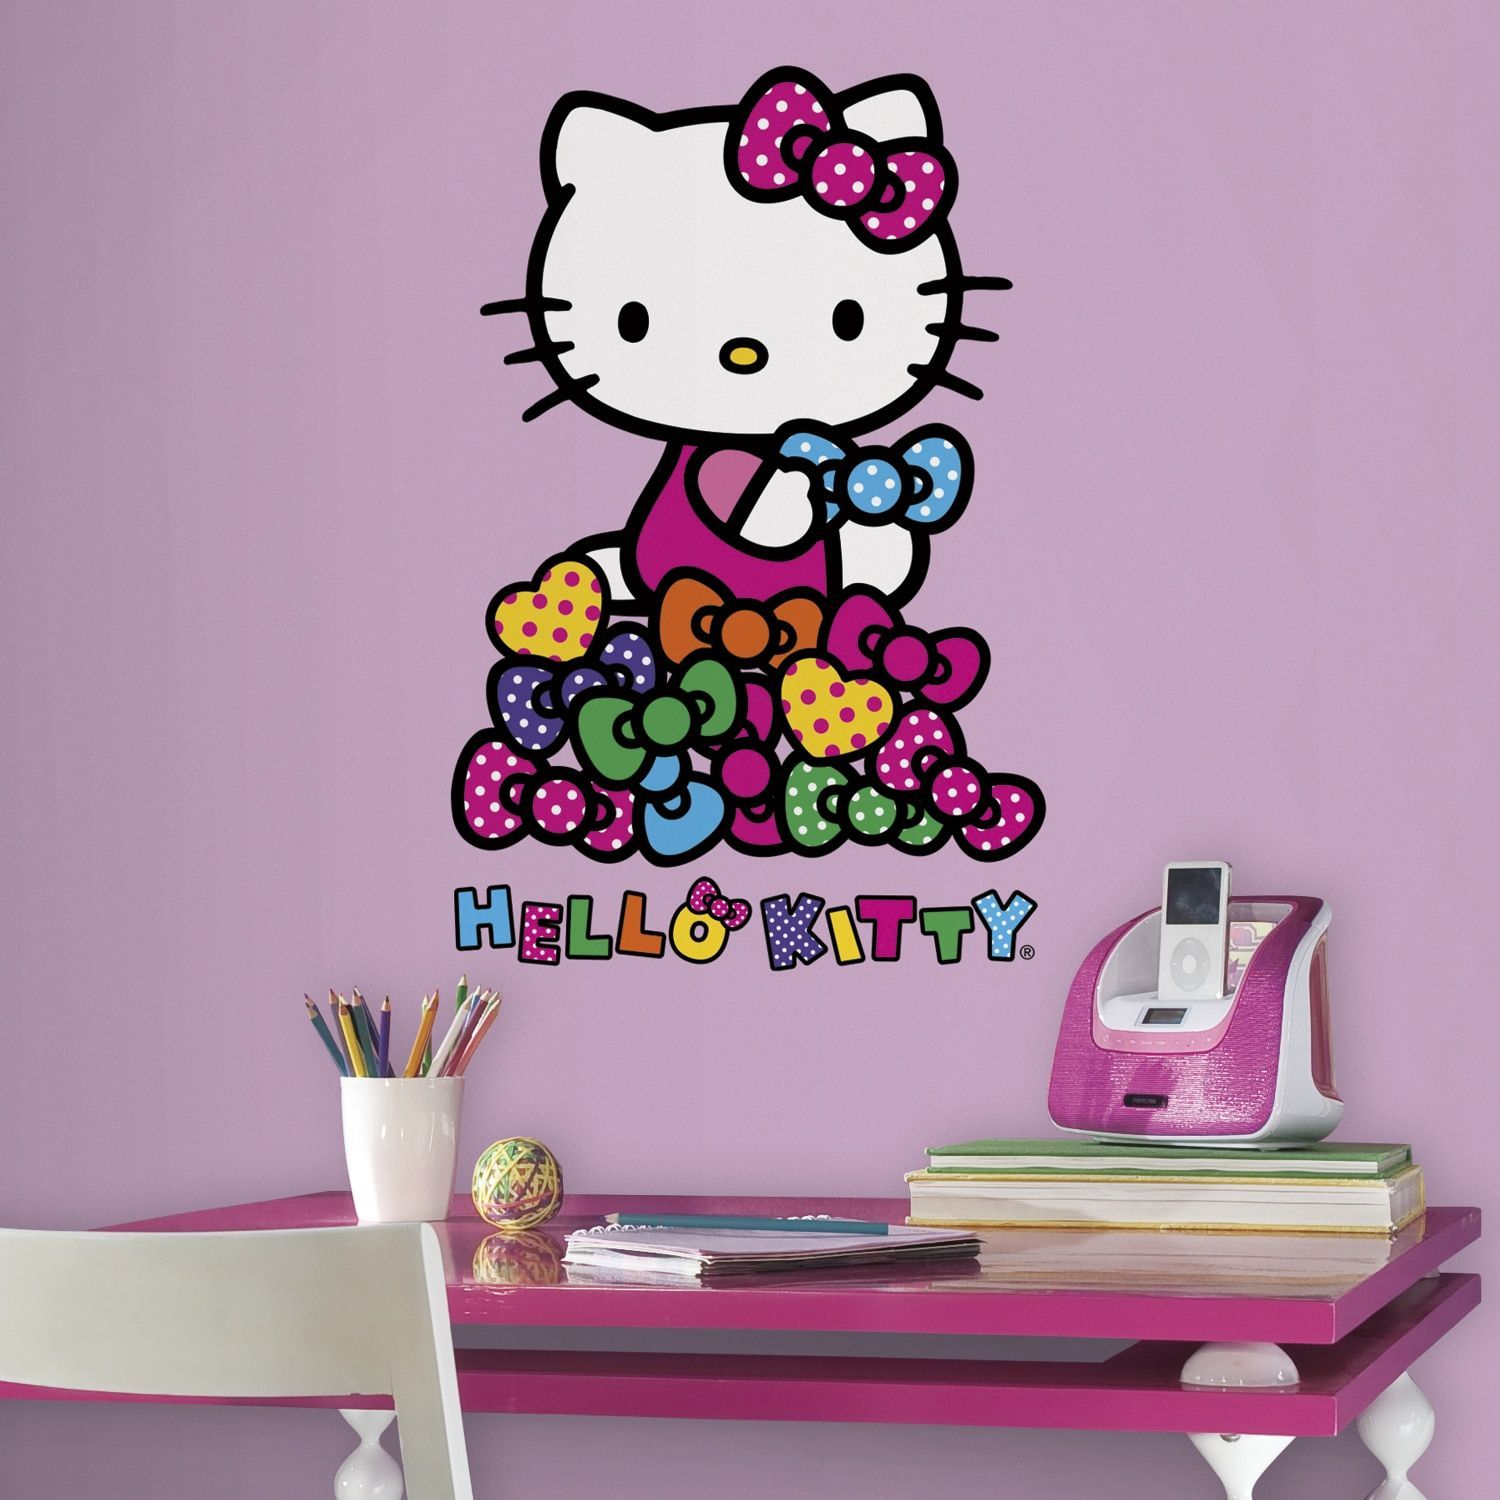 Buy Hello Kitty Wall Decals And Hello Kitty Wall Stickers From Roommates,  The Largest Manufacturer Of Wall Decals And Decorative Peel U0026 Stick  Products In ...